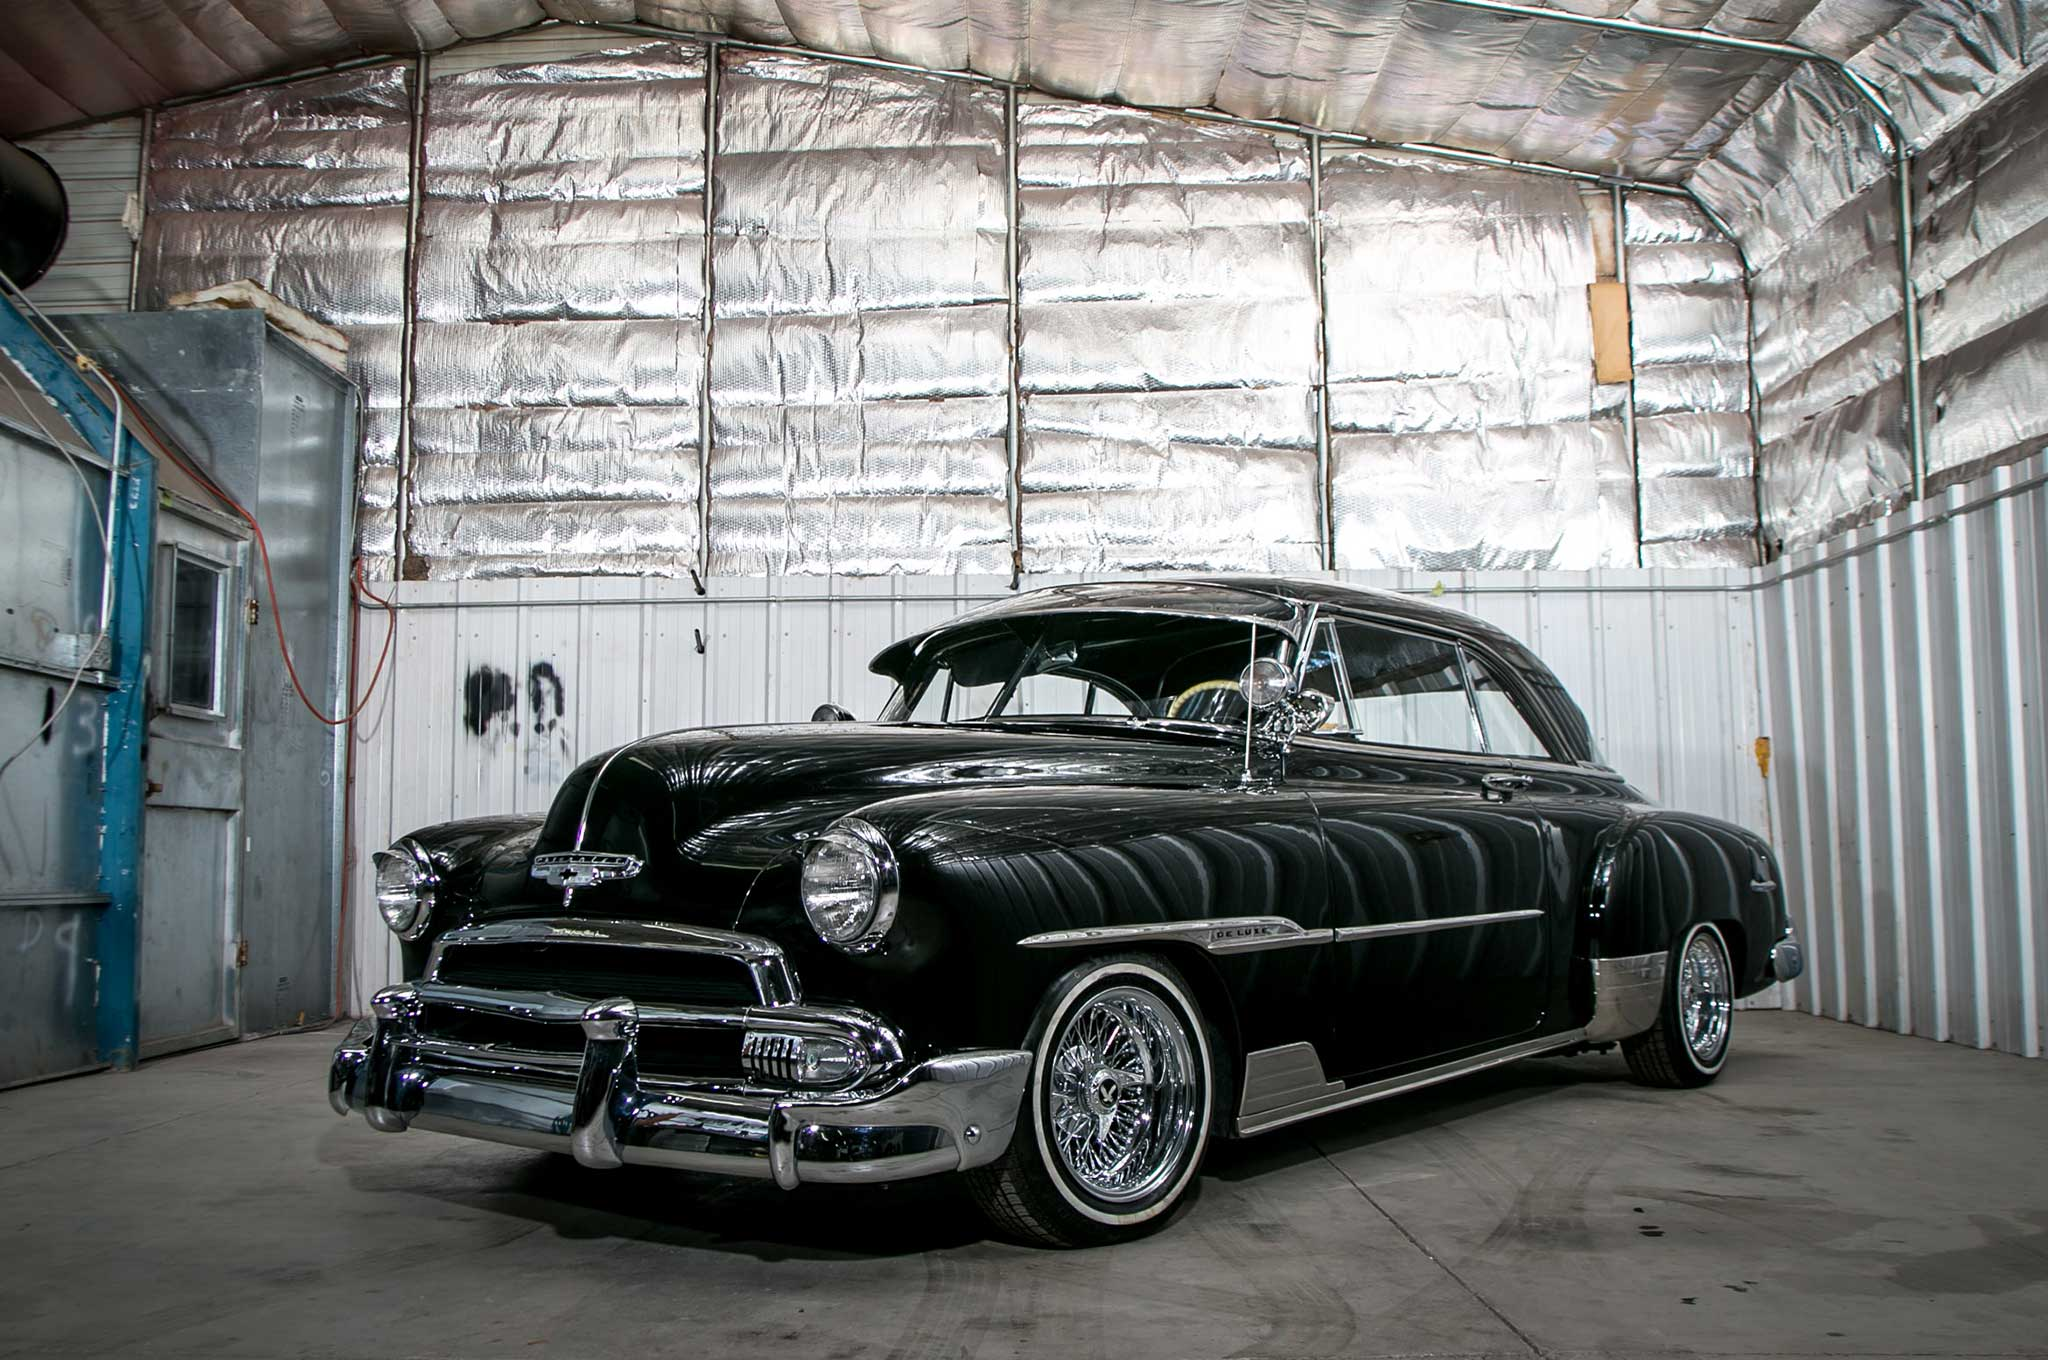 St Charles Mercedes >> 1951 Chevy DeLuxe with a Lowrider Flare